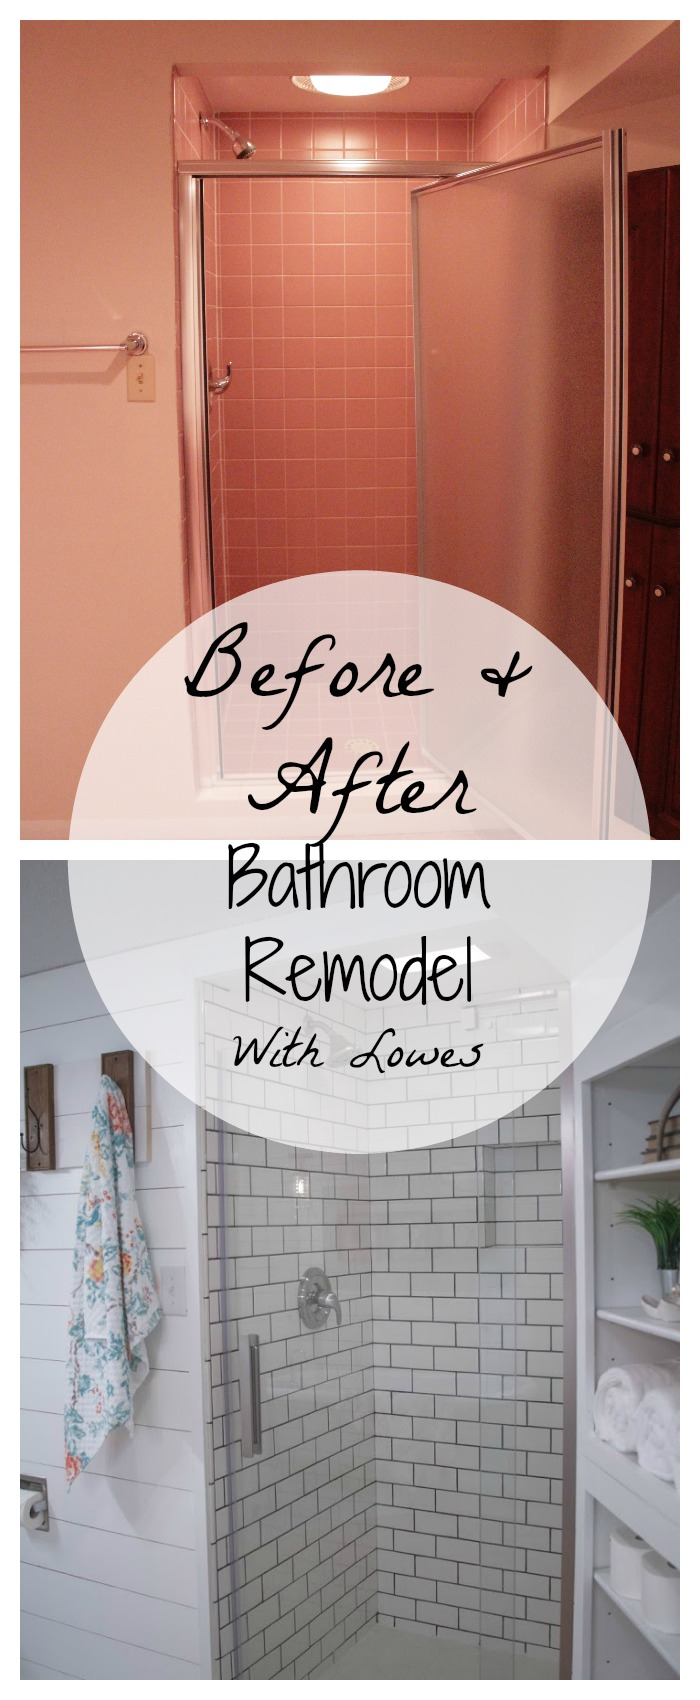 Before and after bathroom remodel with lowes tessa kirby for Bathroom renovation before and after